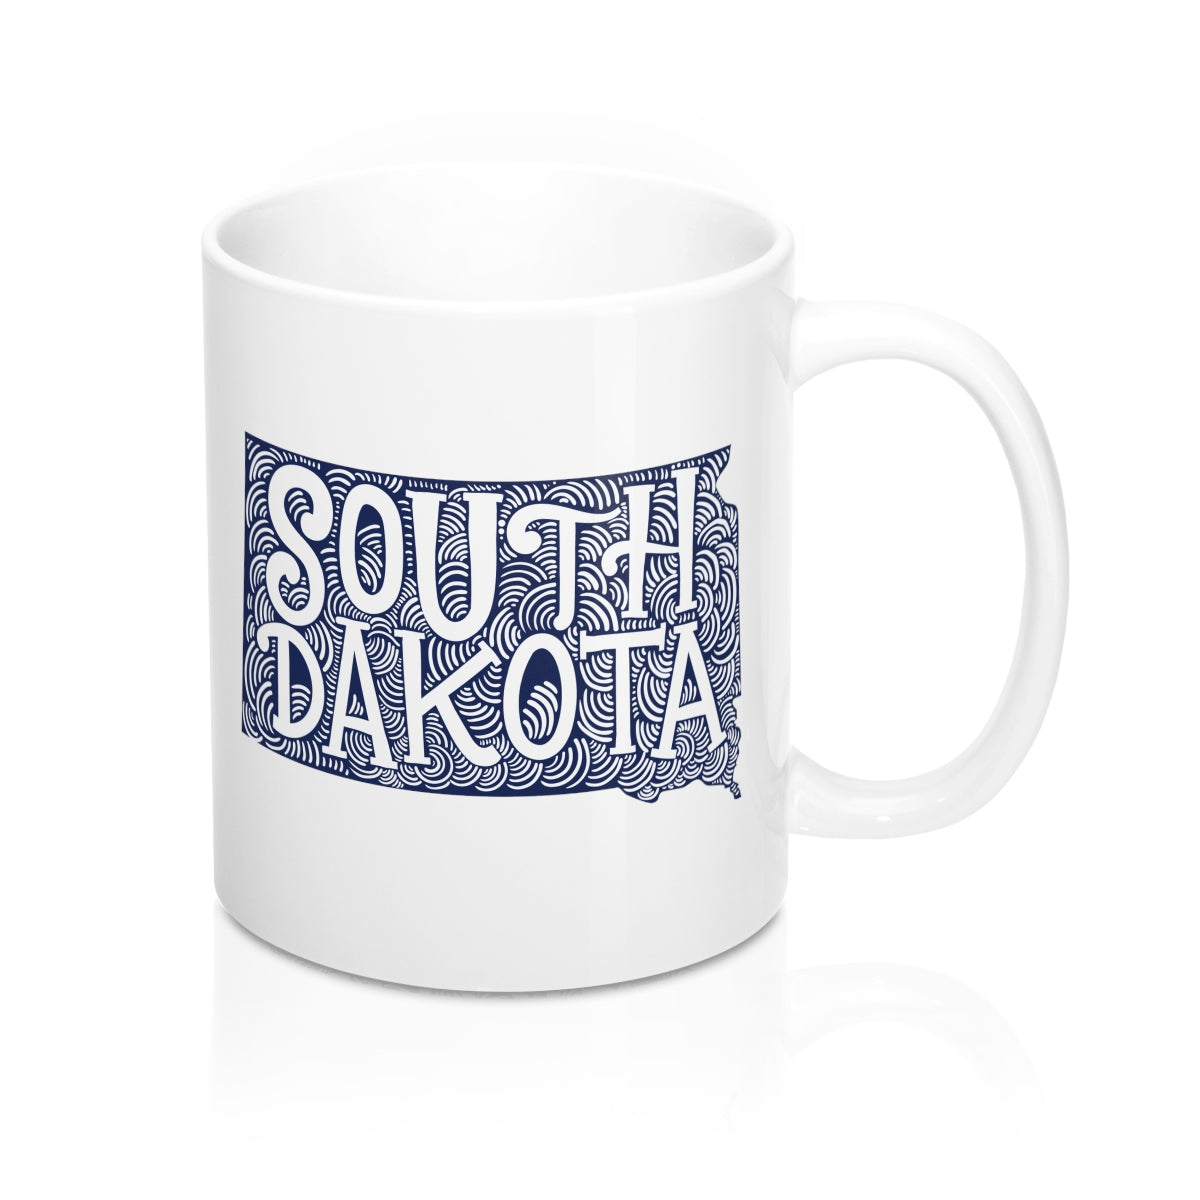 South Dakota Stickers. CO State Outline, South Dakota State Shape, City, Town Stickers, tshirt, t-shirt, hoodie